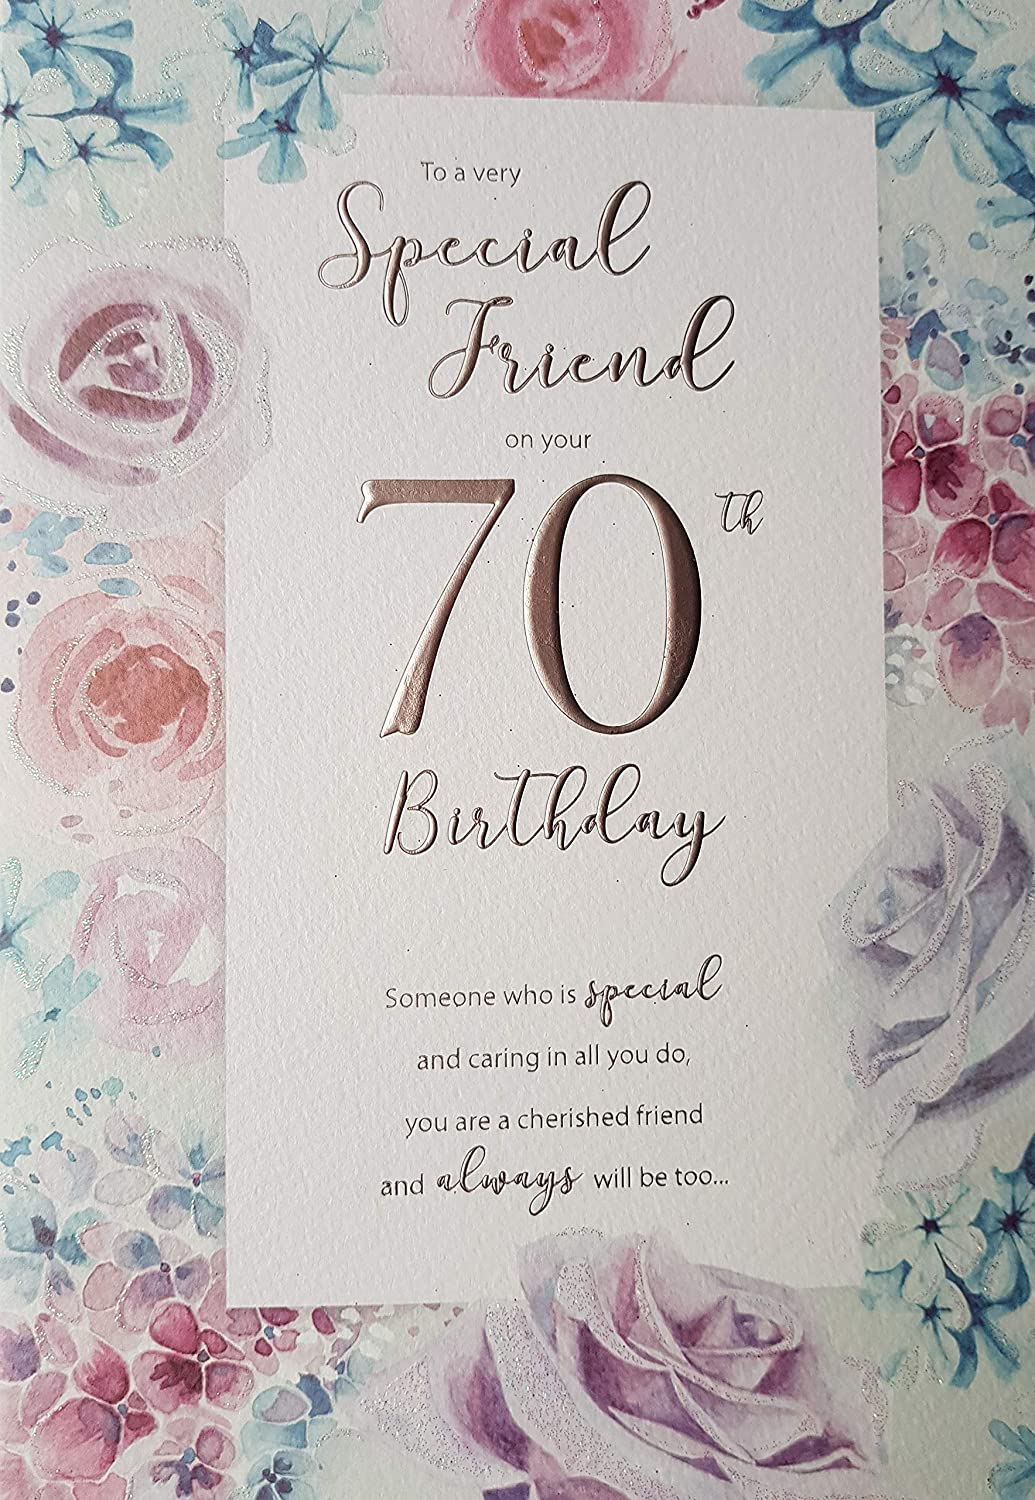 Special Friend On Your 70th Birthday Card Amazoncouk Kitchen Home